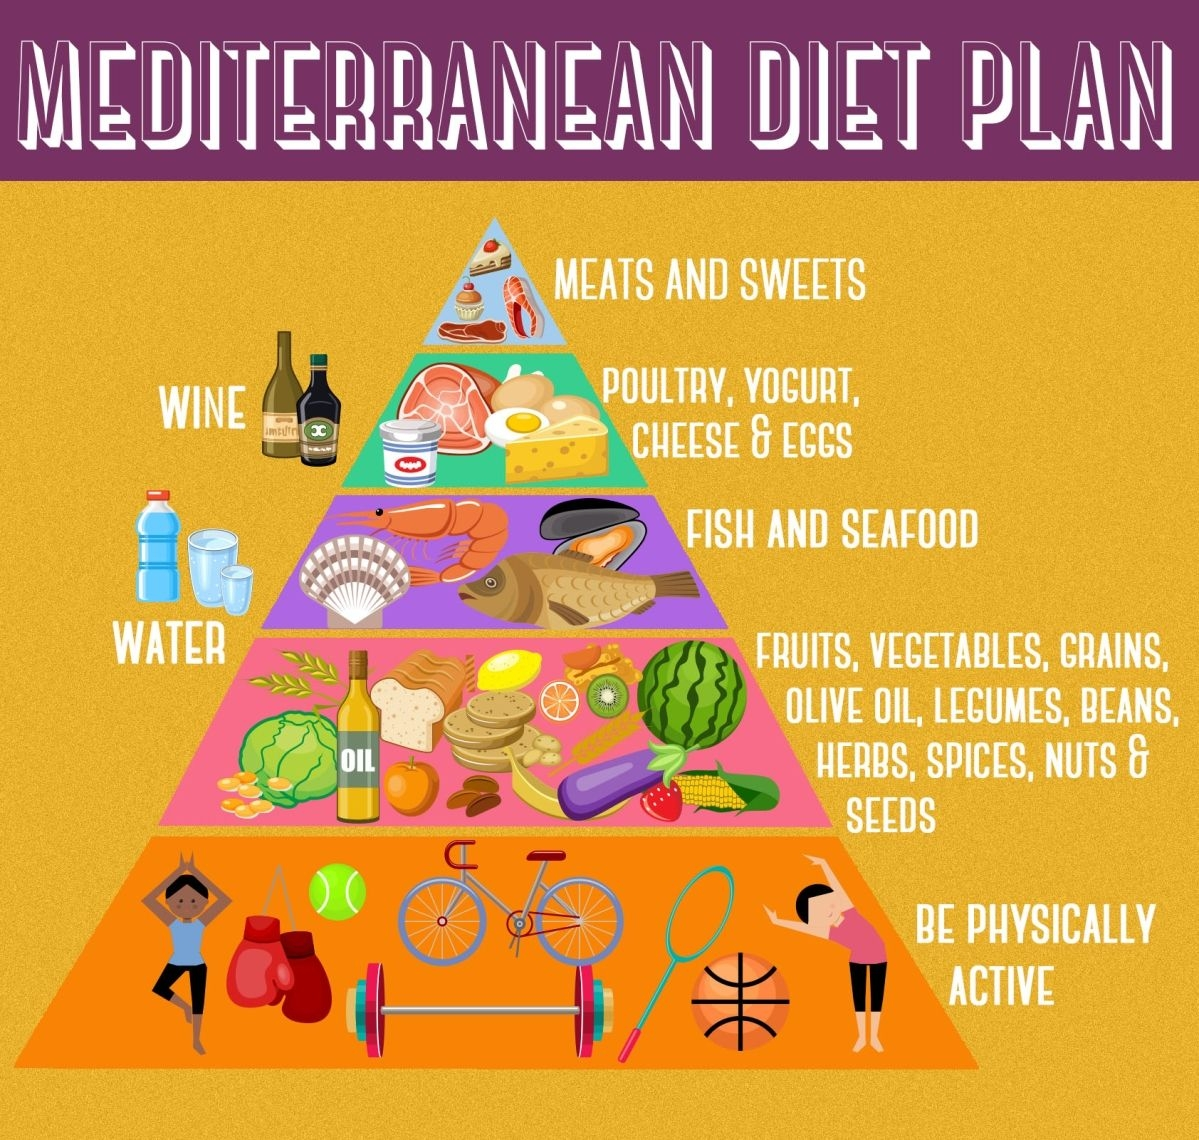 Report says Mediterranean Diet is best in 2019